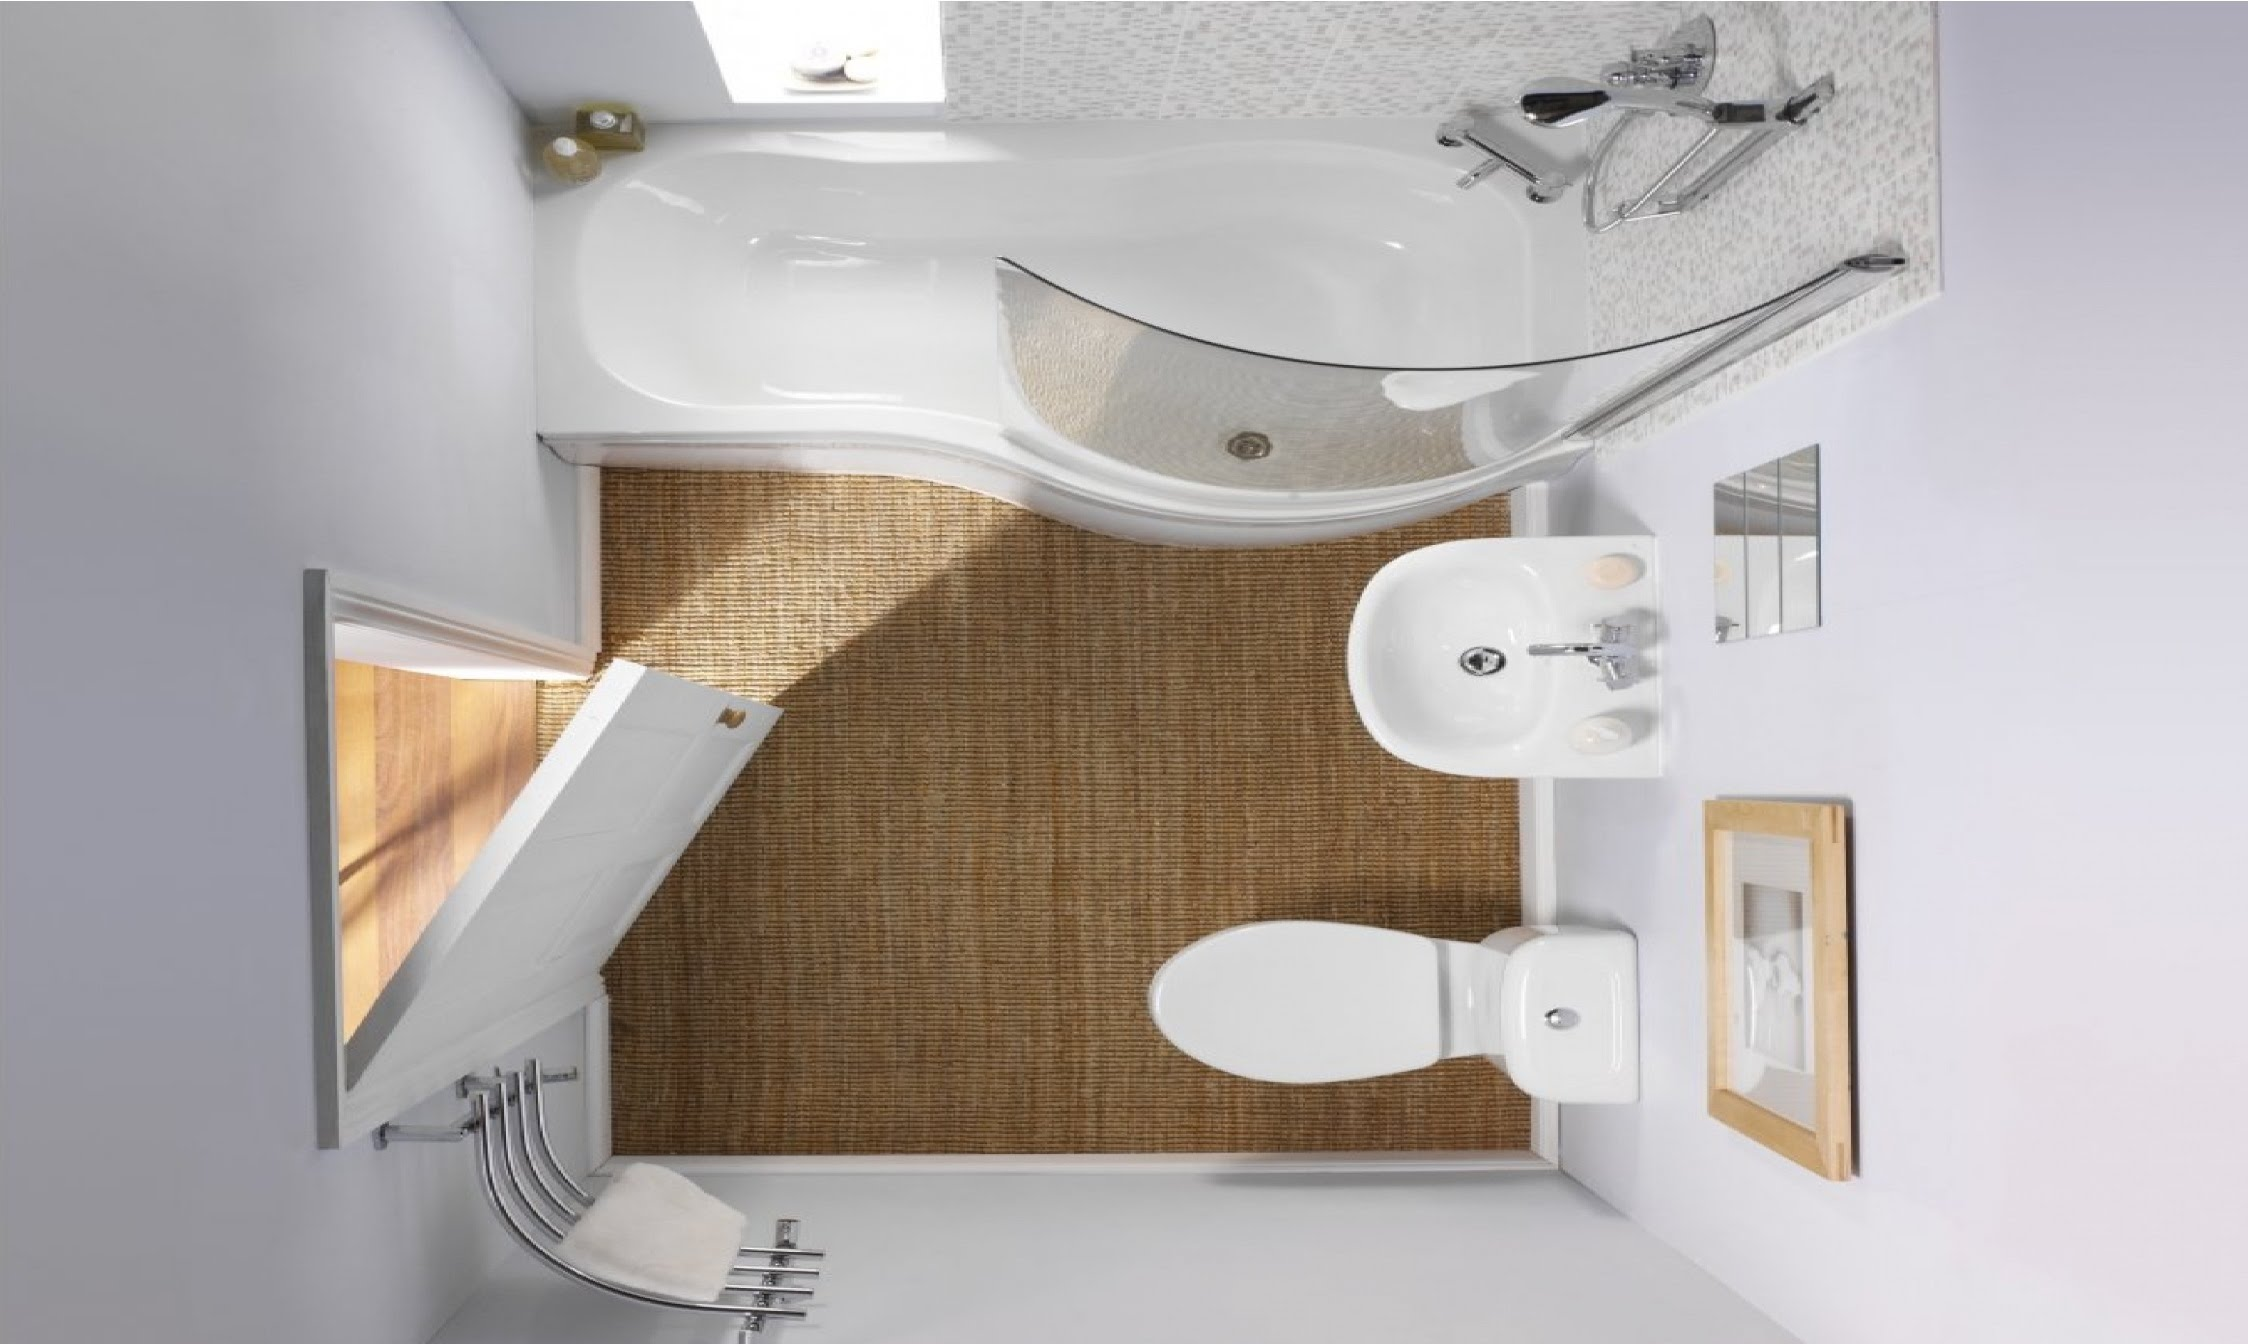 simple bathroom designs for small spaces small bathroom design ideas - room ideas - youtube OVDYLMF